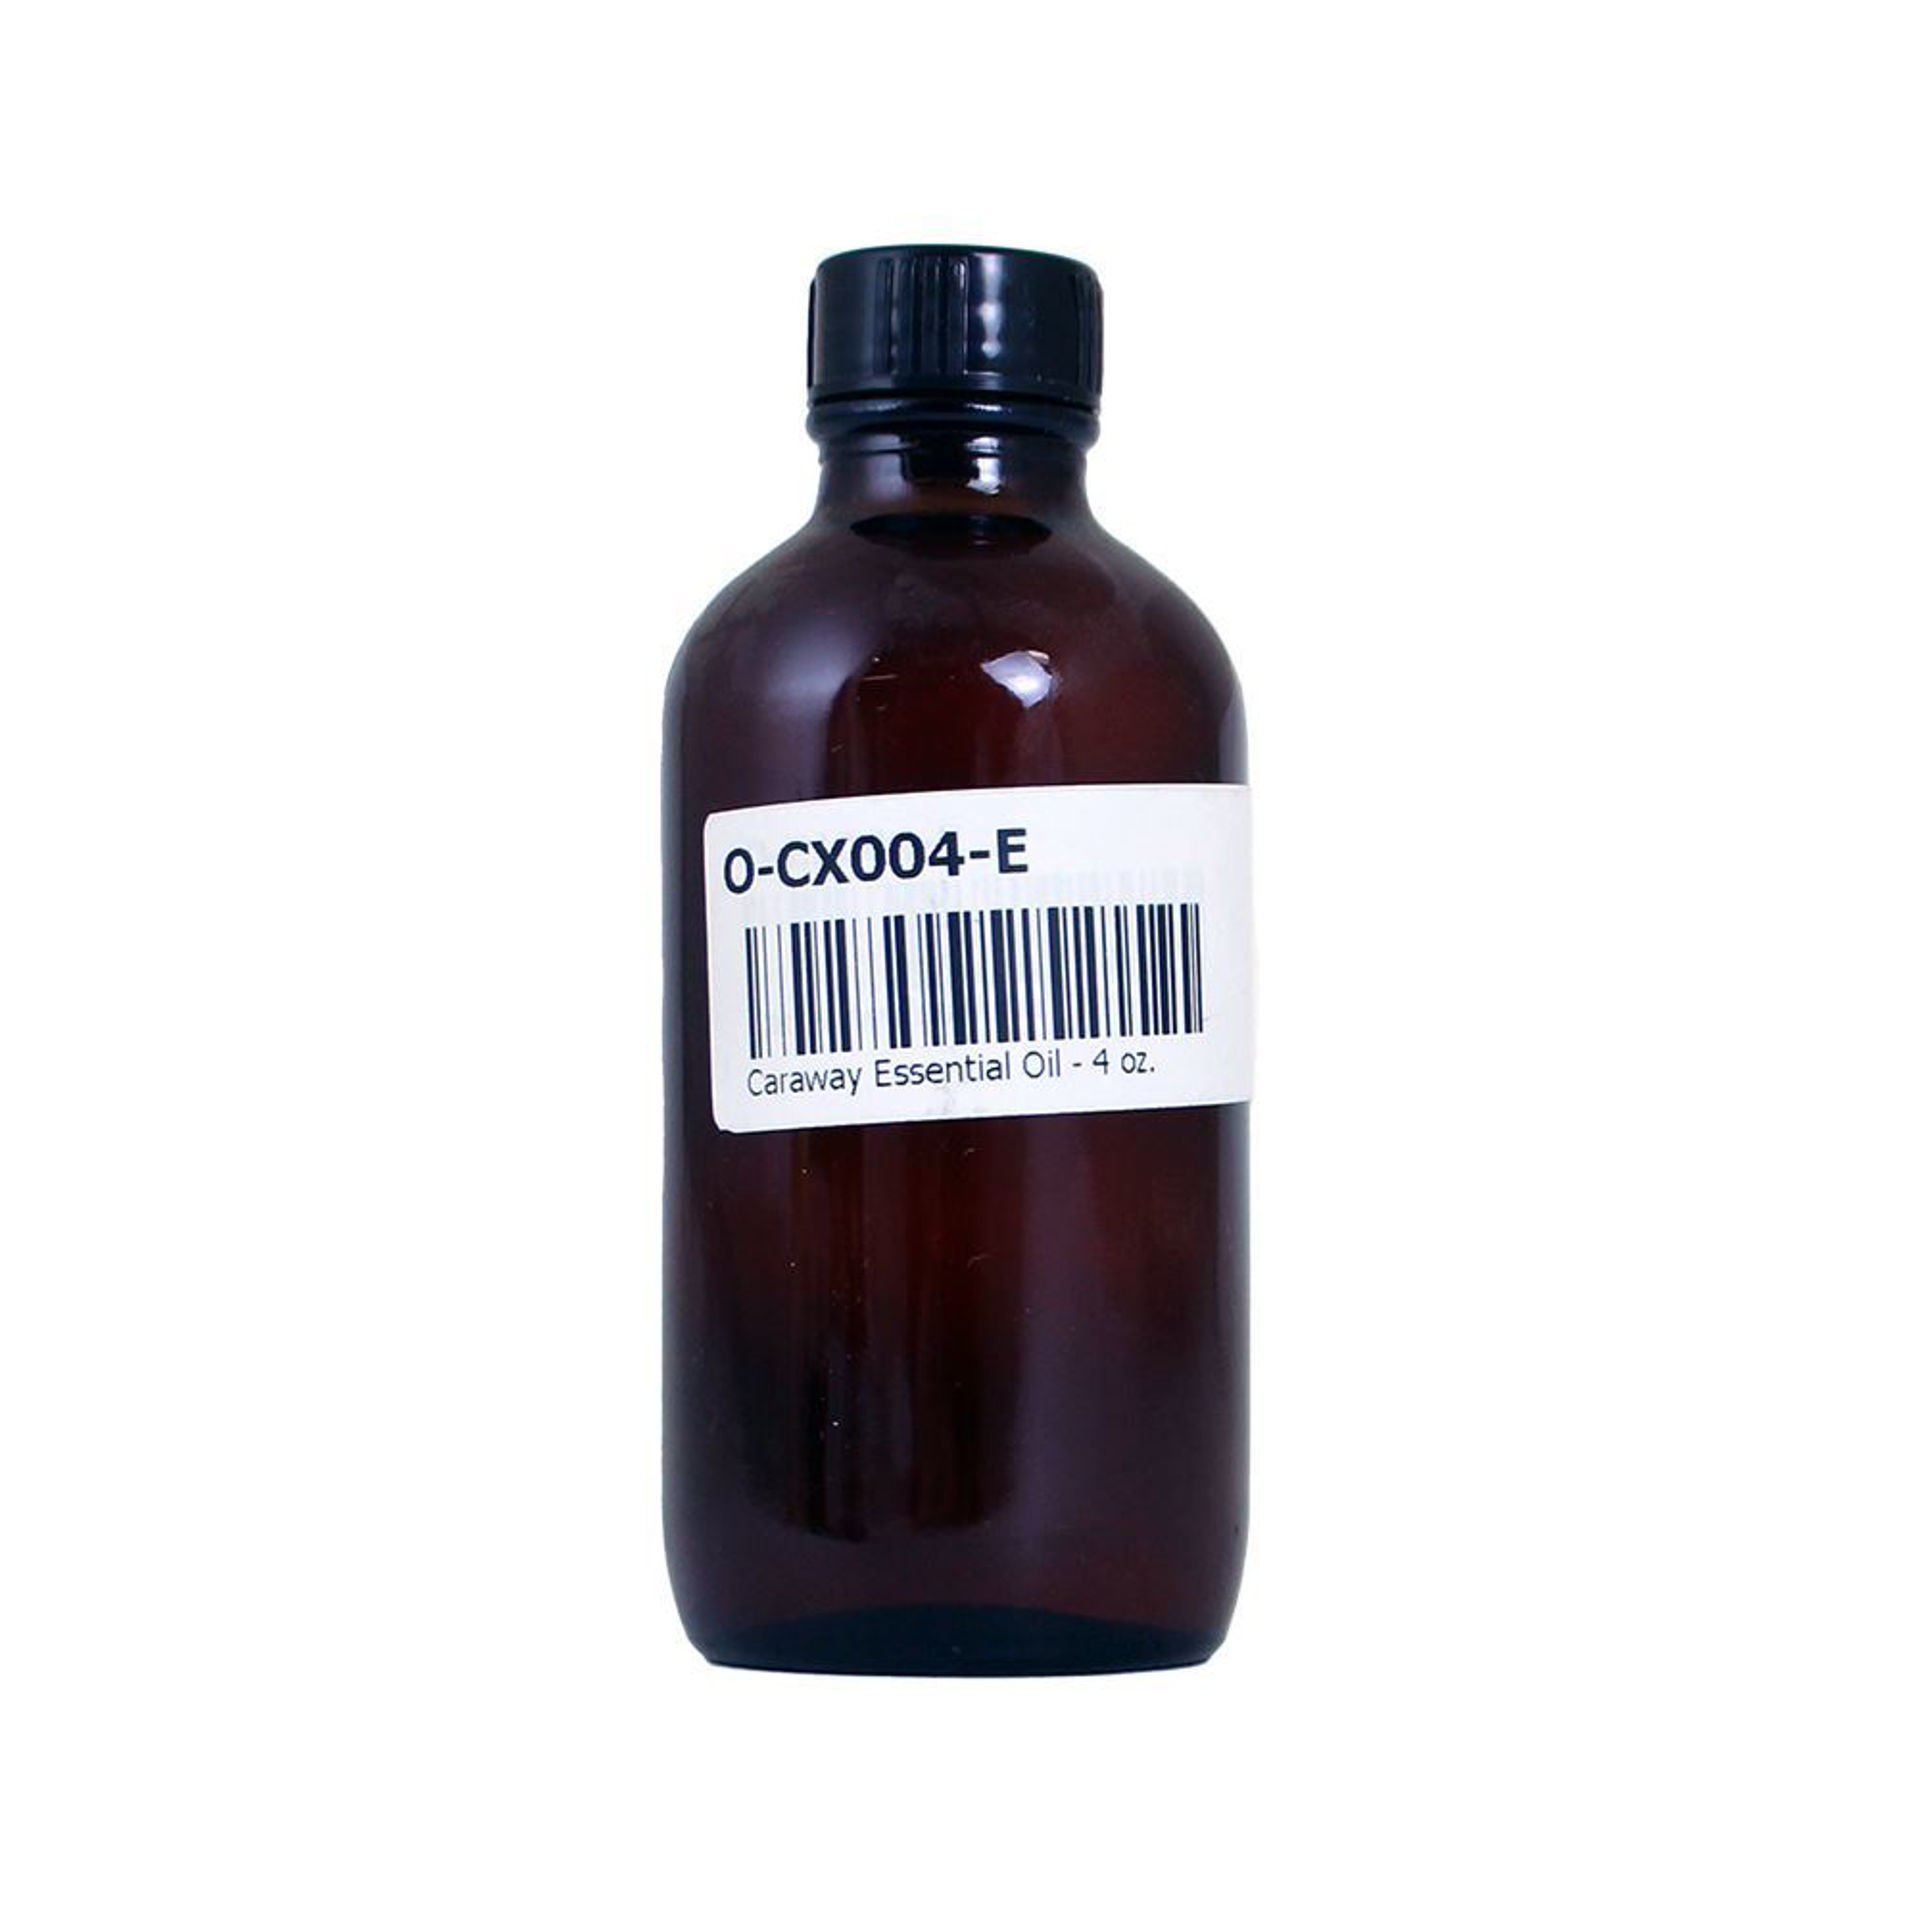 Picture of Caraway Essential Oil - 4 oz.